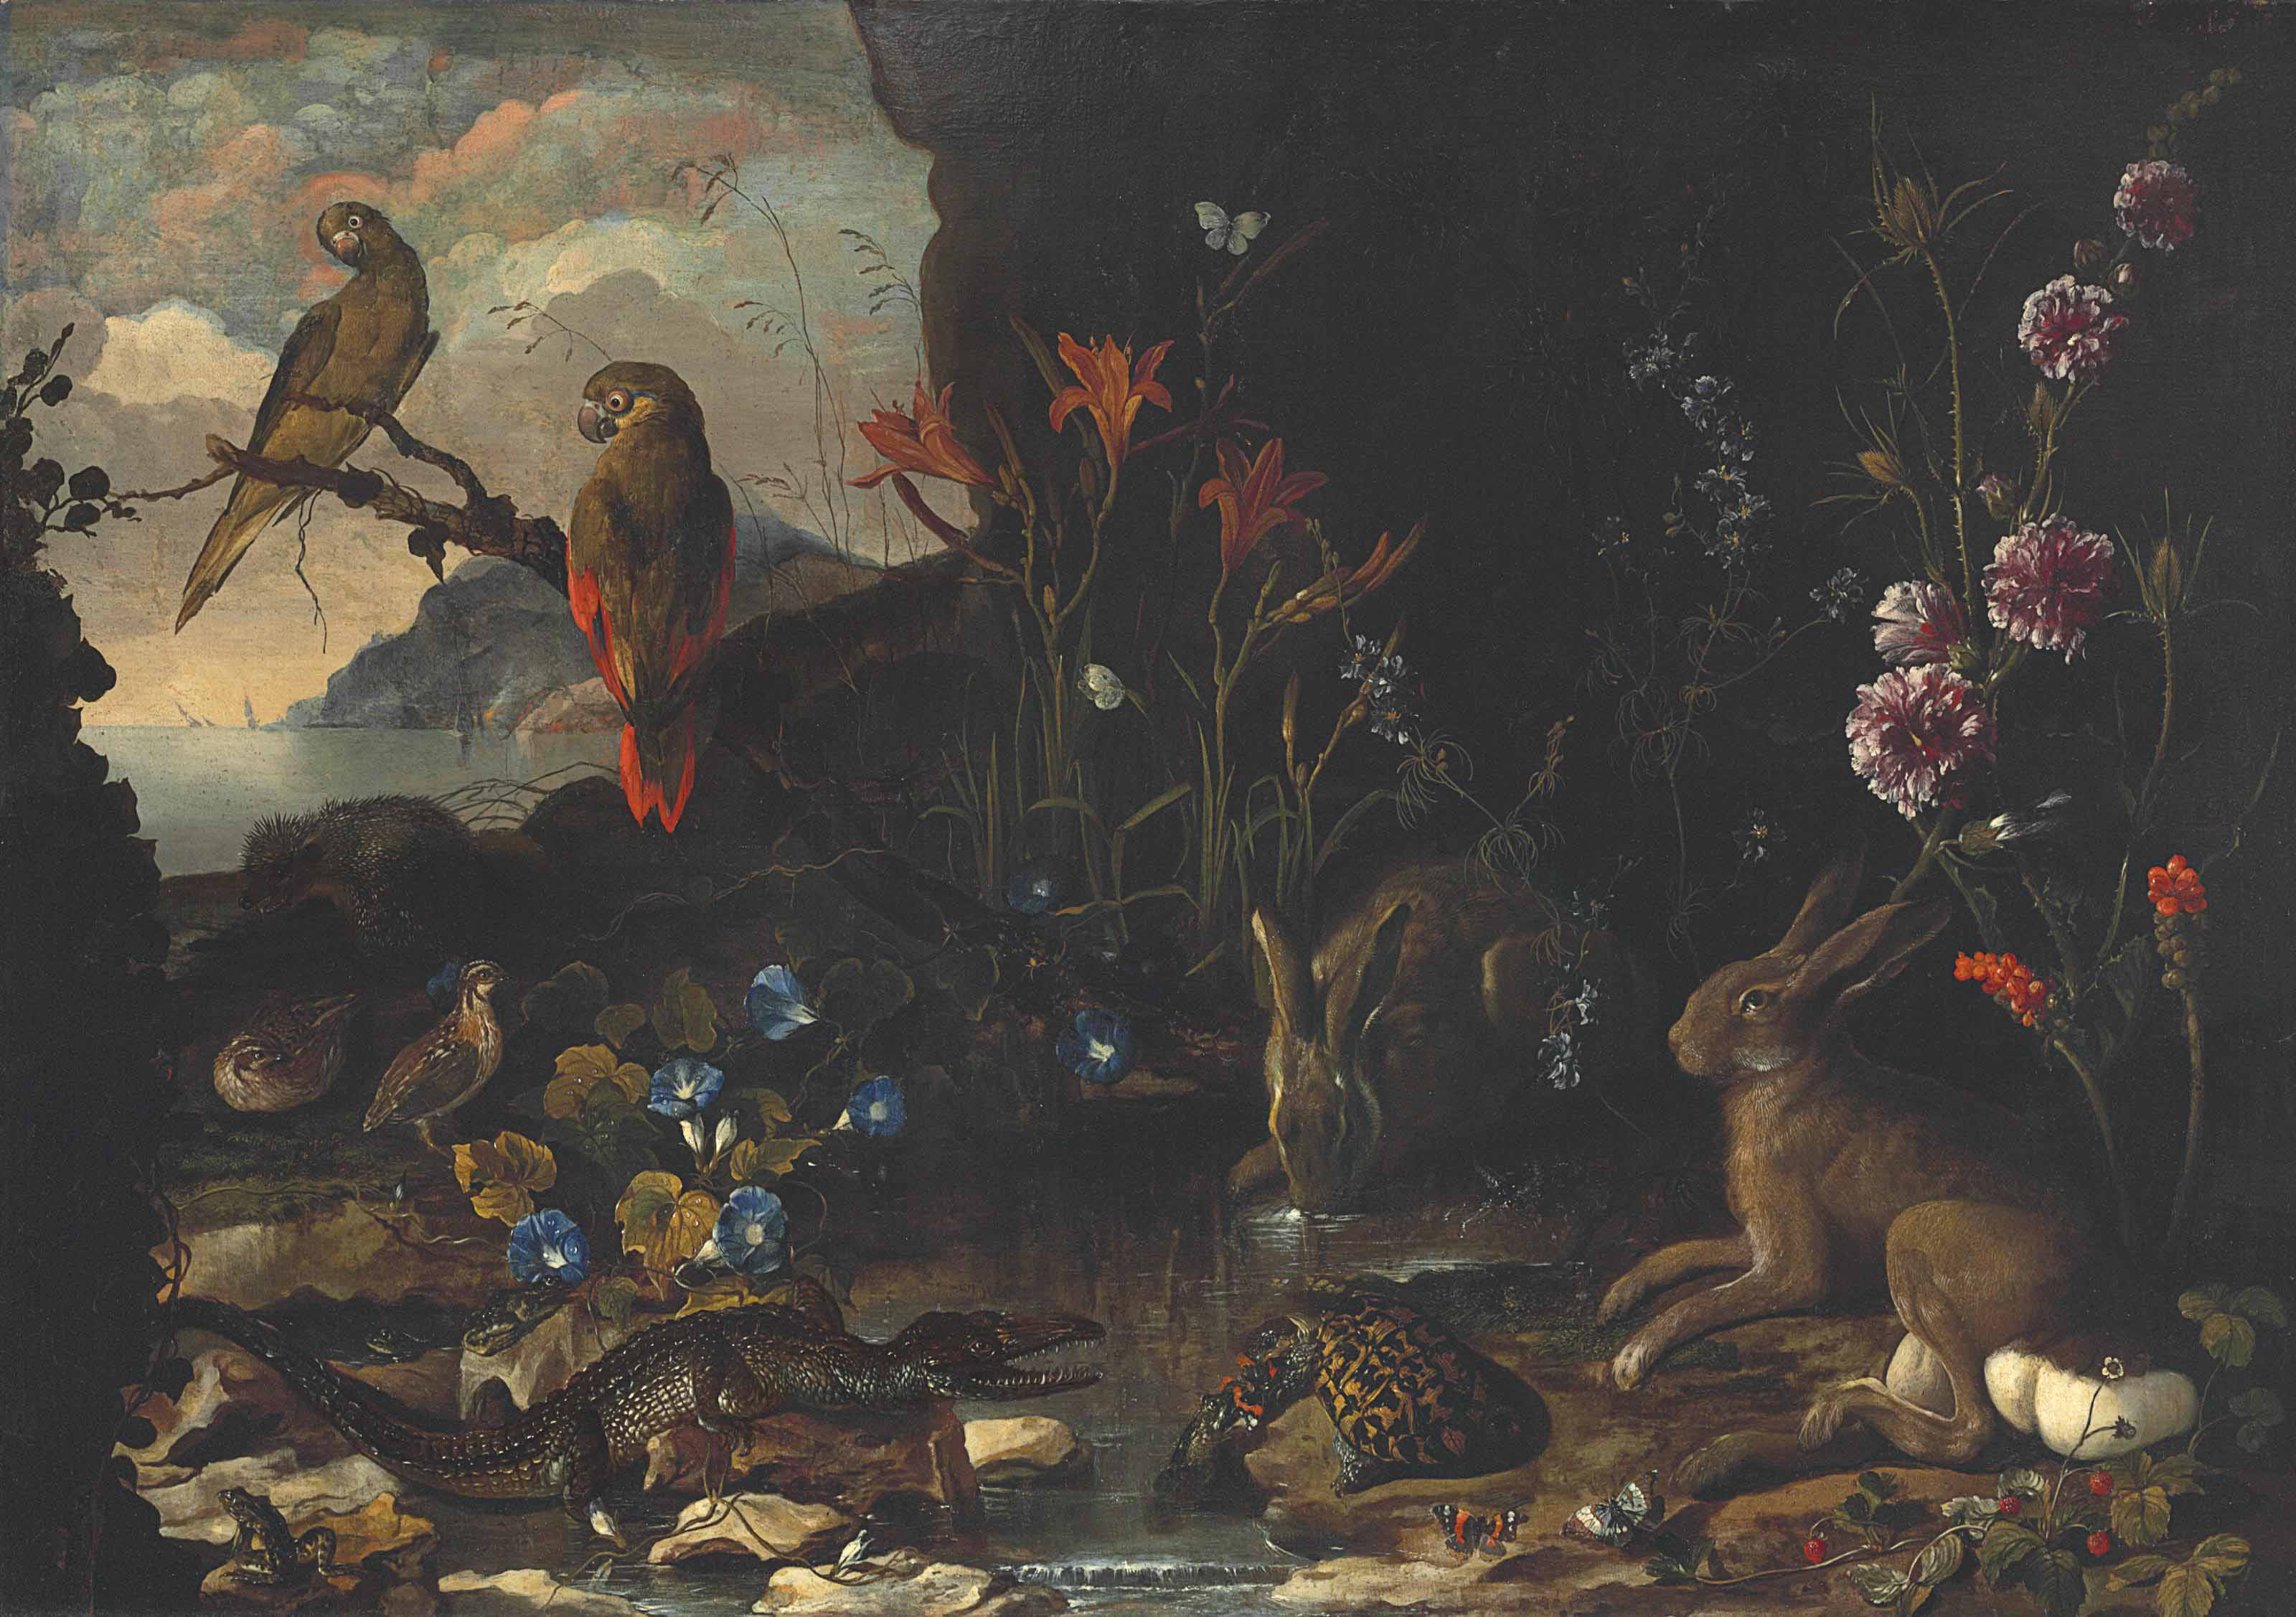 Hares, a tortoise, a crocodile, frogs, quails, a hedgehog, butterflies, dragonflies and parakeets by a pool, with flowers, strawberries and a river in the distance